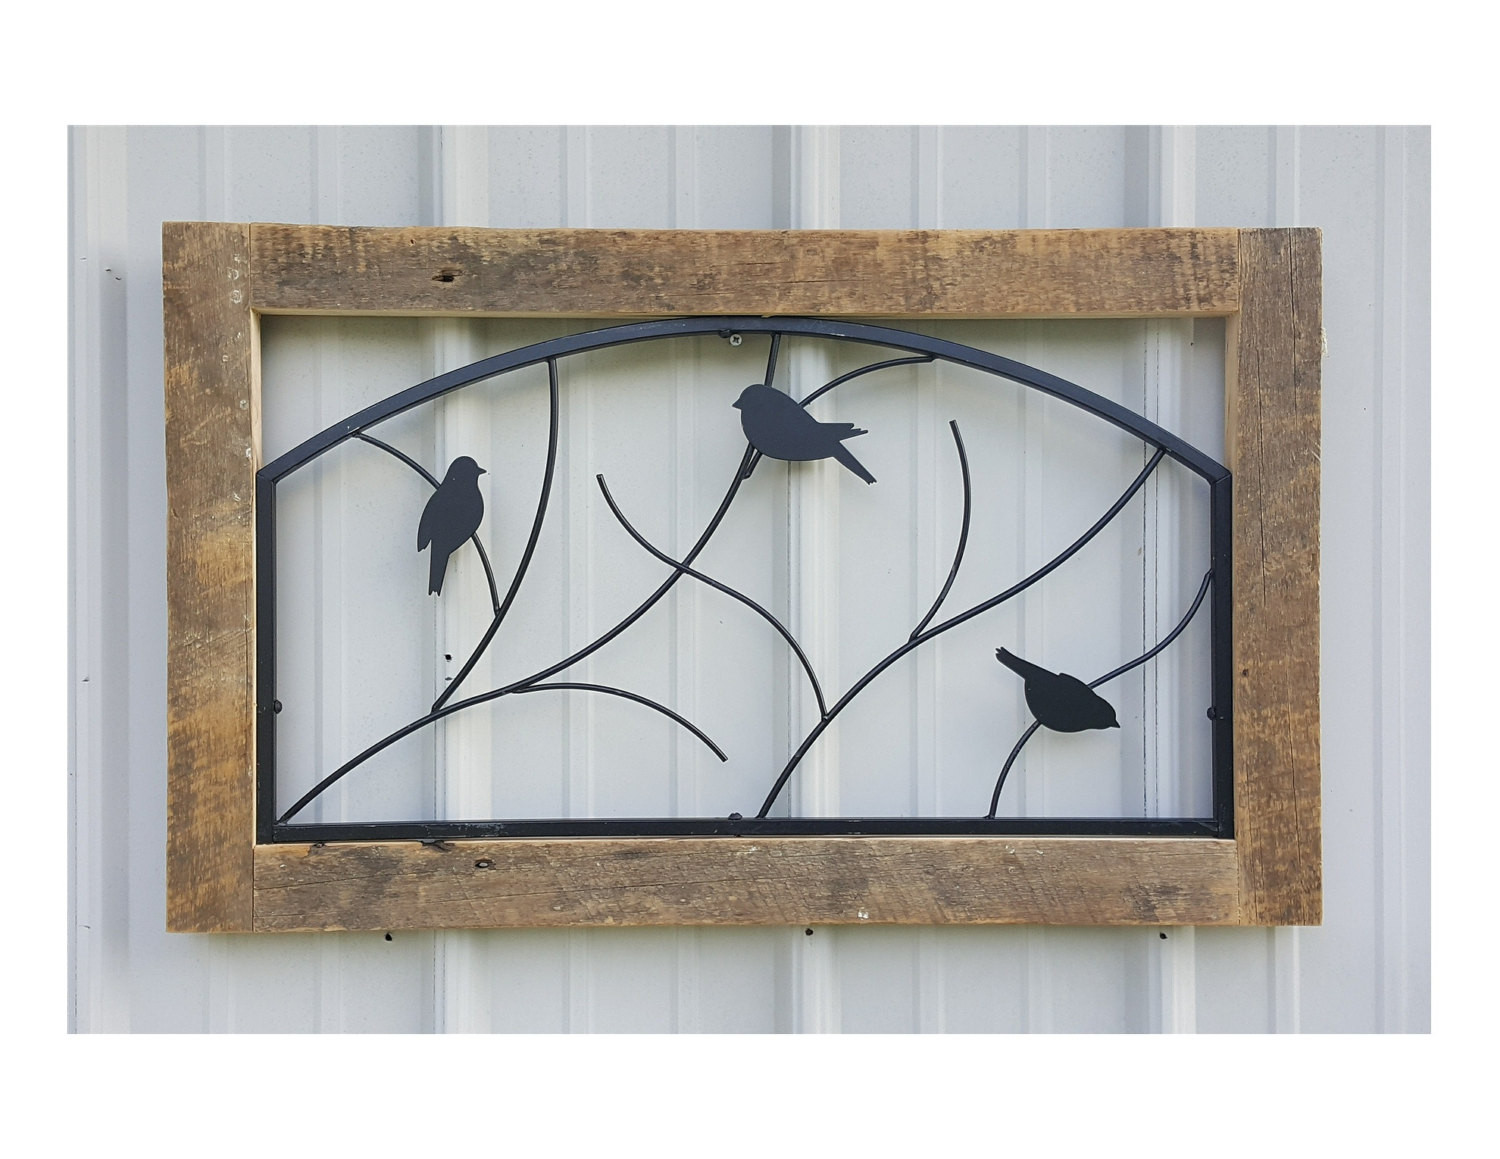 Best ideas about Rustic Metal Wall Art . Save or Pin Rustic Wall Hanging Reclaimed Barnwood & Metal Wall Decor Now.